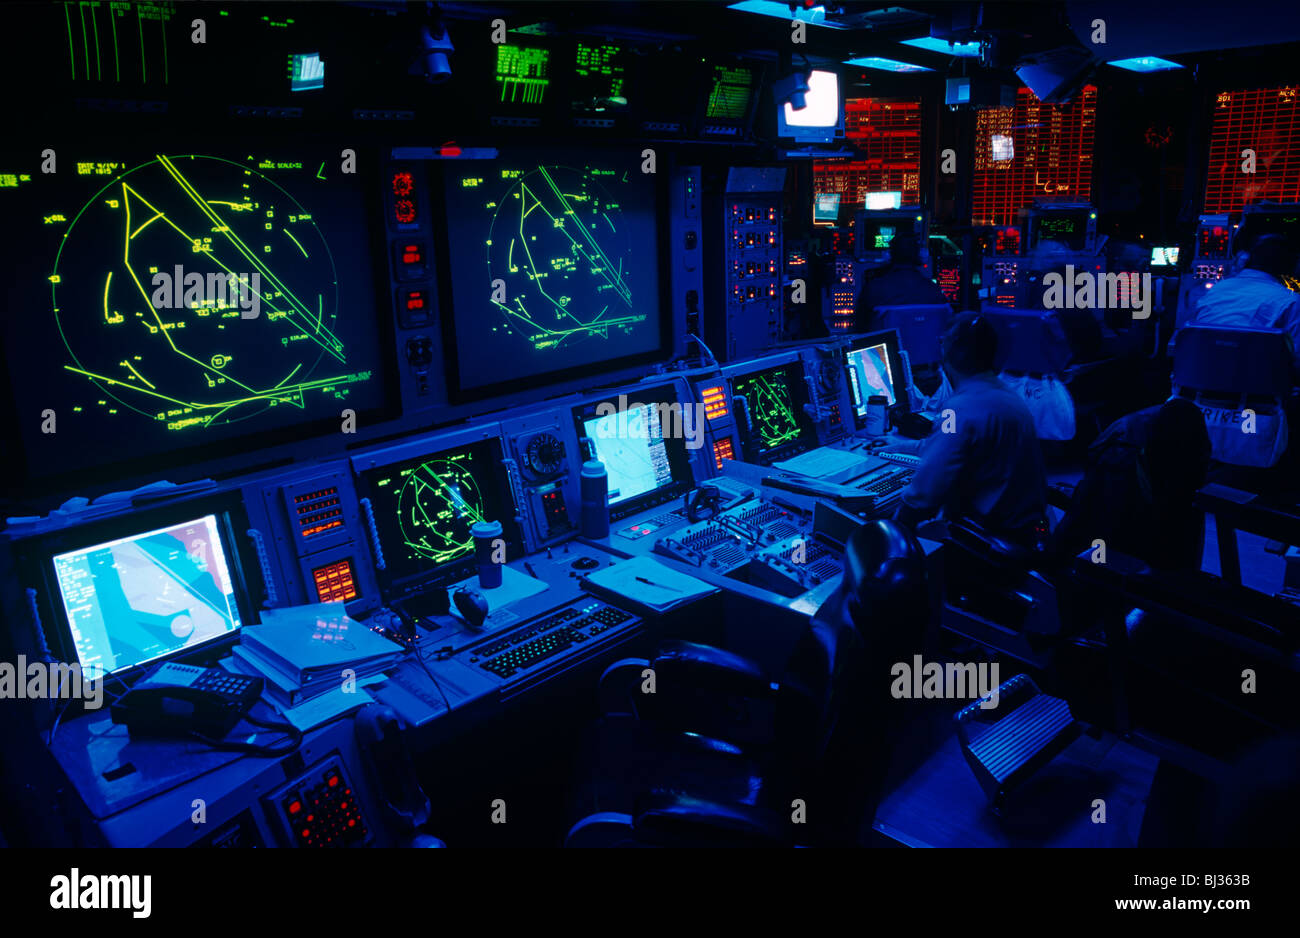 download digital control systems electronic resource design identification